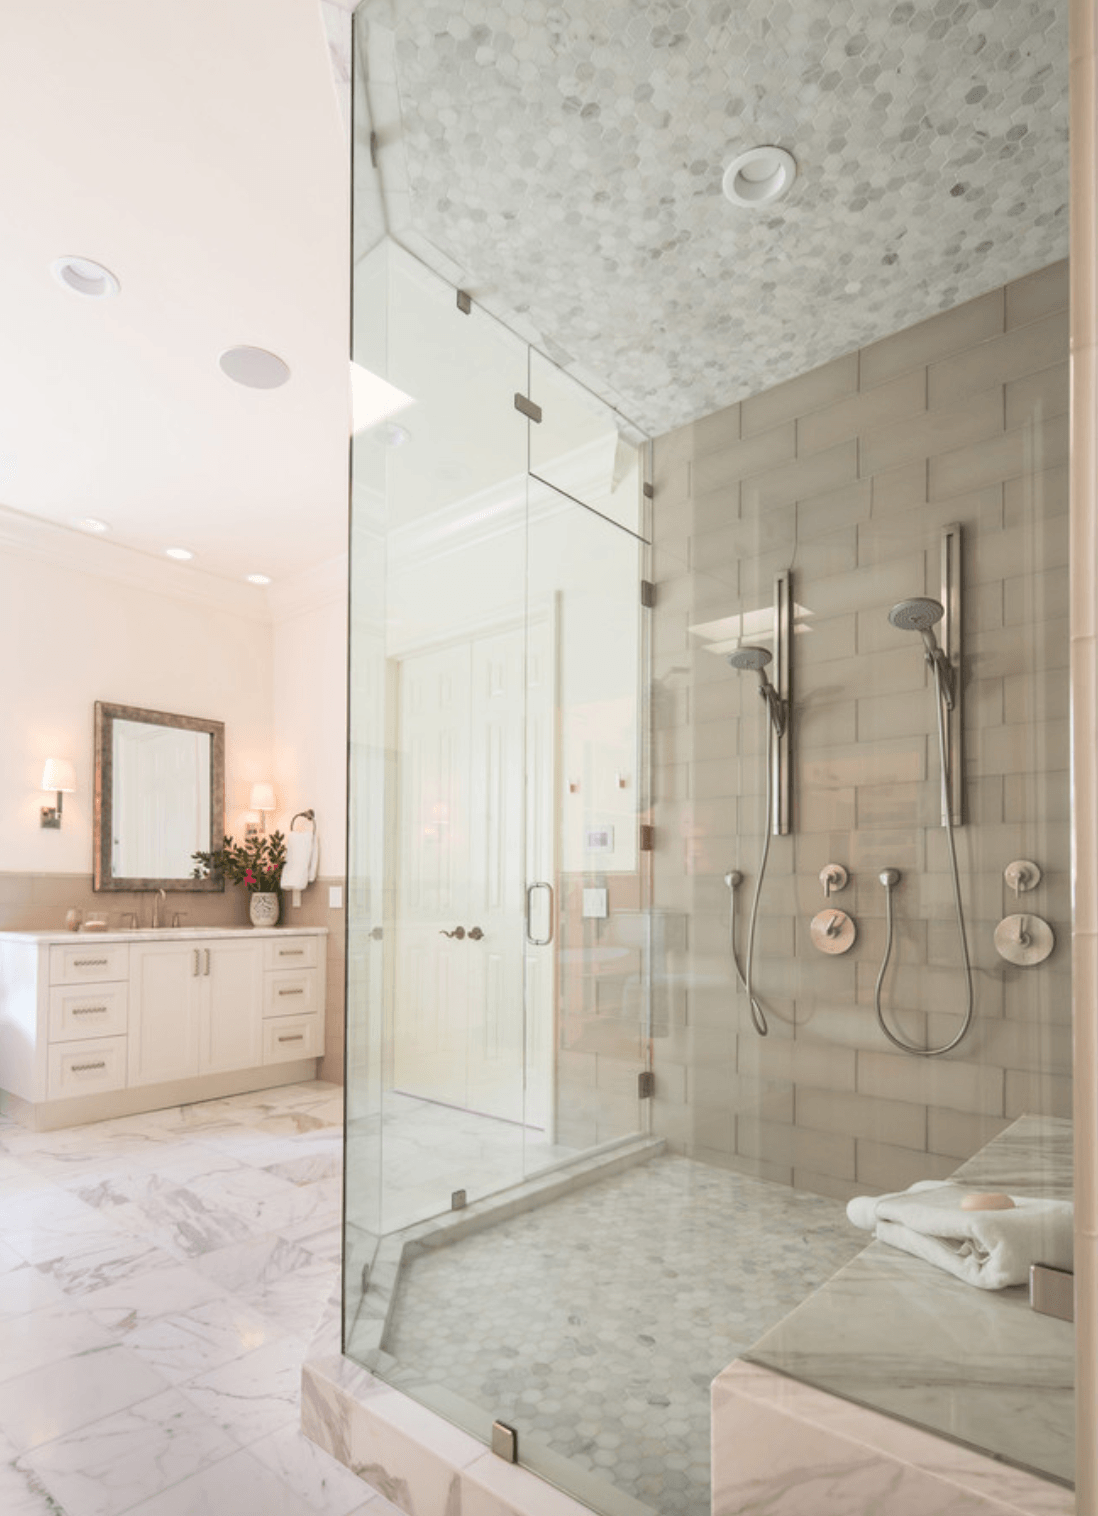 Cream and white Ceramic and porcelain tile in this contemporary master bathroom